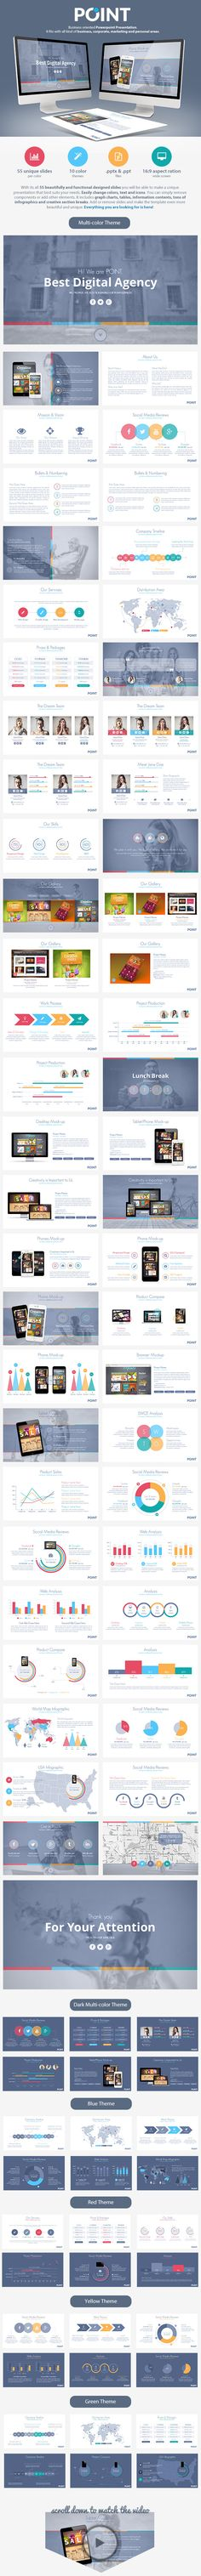 718 best powerpoint templates images on pinterest page layout